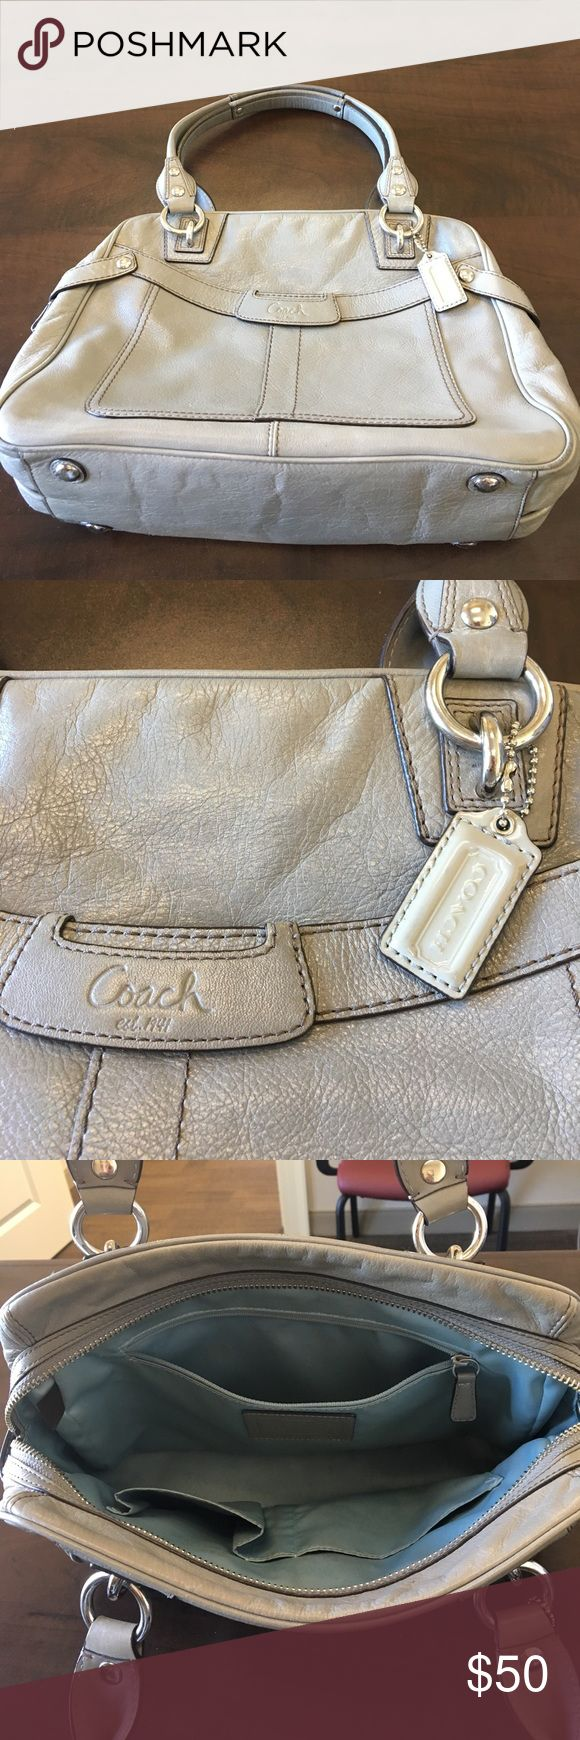 Coach Leather Handbag This well-loved handbag is the perfect shade of gray and the perfect size to hold everything you need to get you through the day! Will fit iPad mini and has both exterior zippered pocket and open pocket, as well as zippered main compartment with zippered pocket and open pockets for a pen and two cell phones. The outer leather is in good shape, but the ice blue lining needs some work and I just don't know how to do that. Includes the Coach badging that came with the bag…